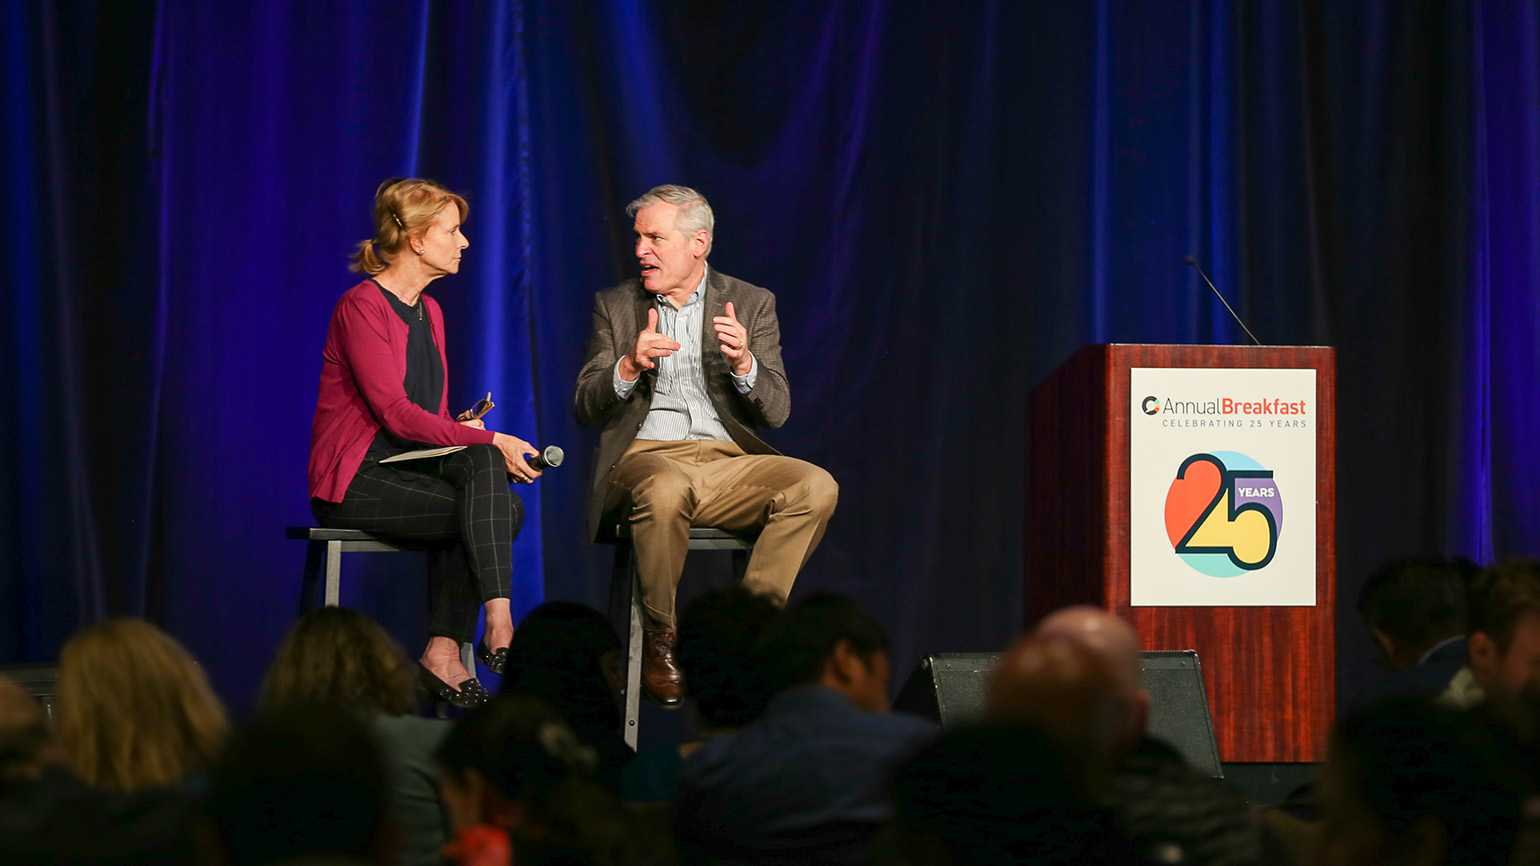 Silicon Valley Breakfast Event Brings Faith and Business Together